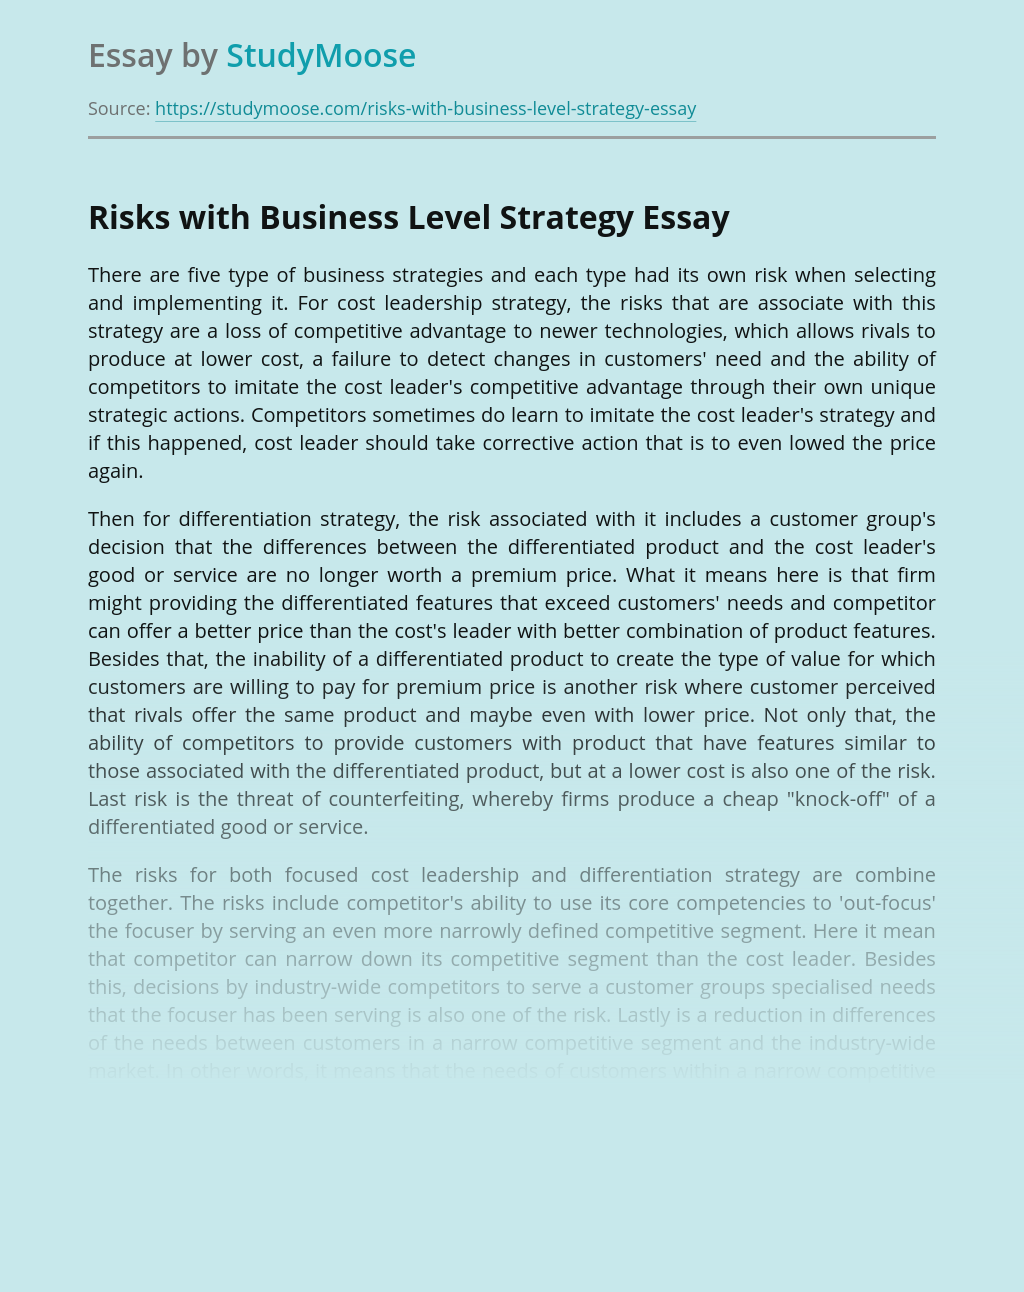 Risks with Business Level Strategy